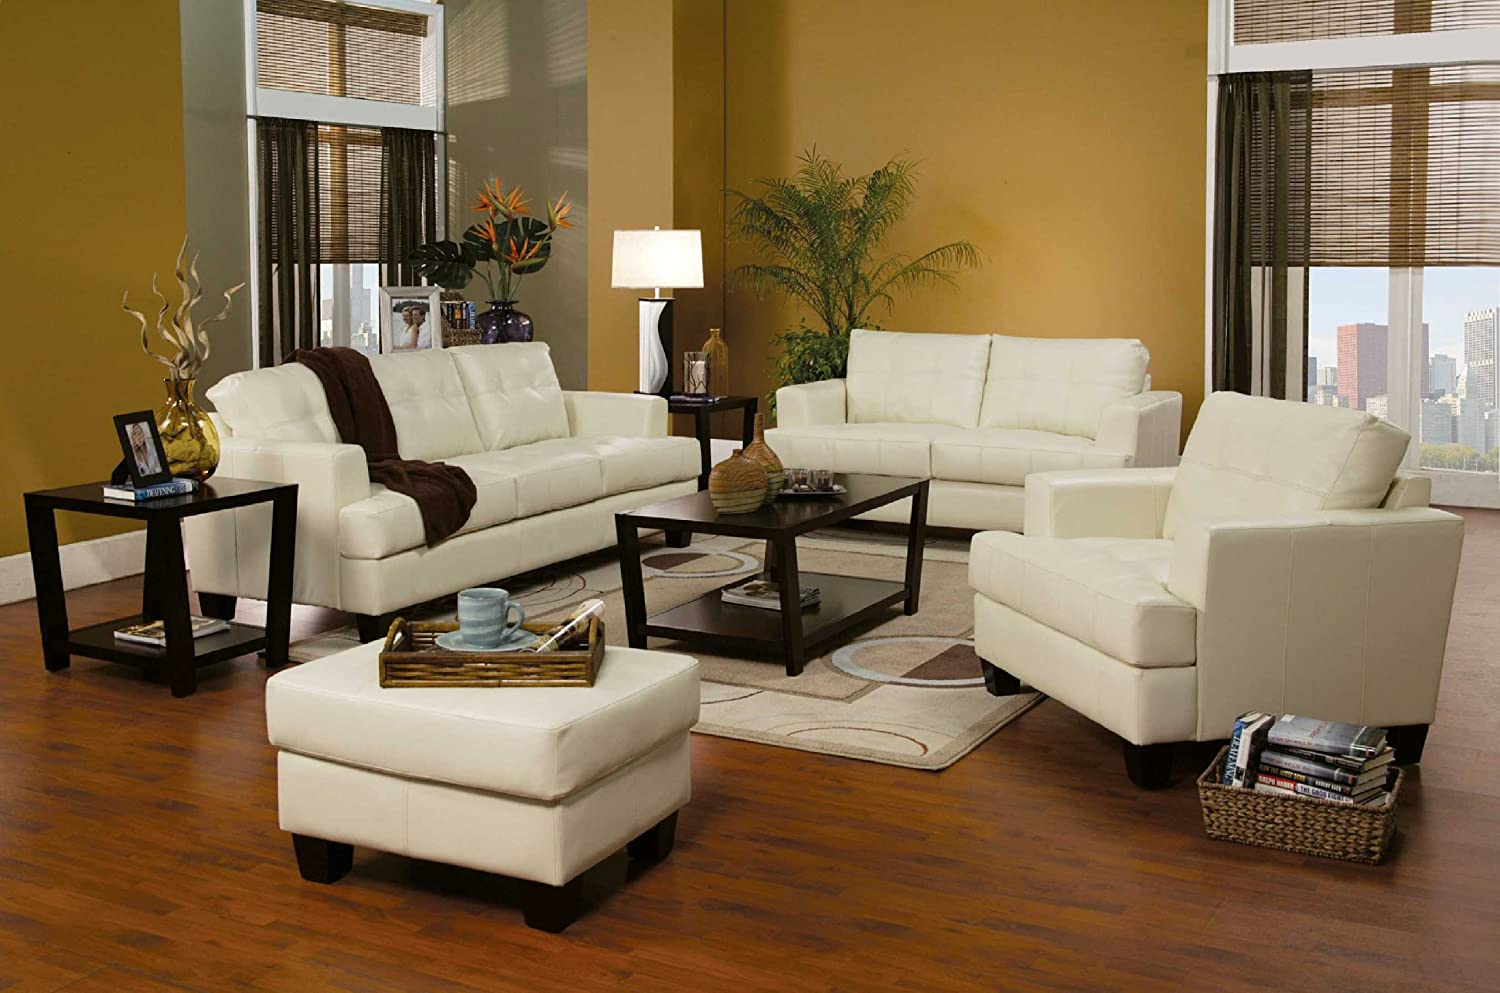 3 PCs Cream Classic Leather Sofa, Loveseat, and Chair Set